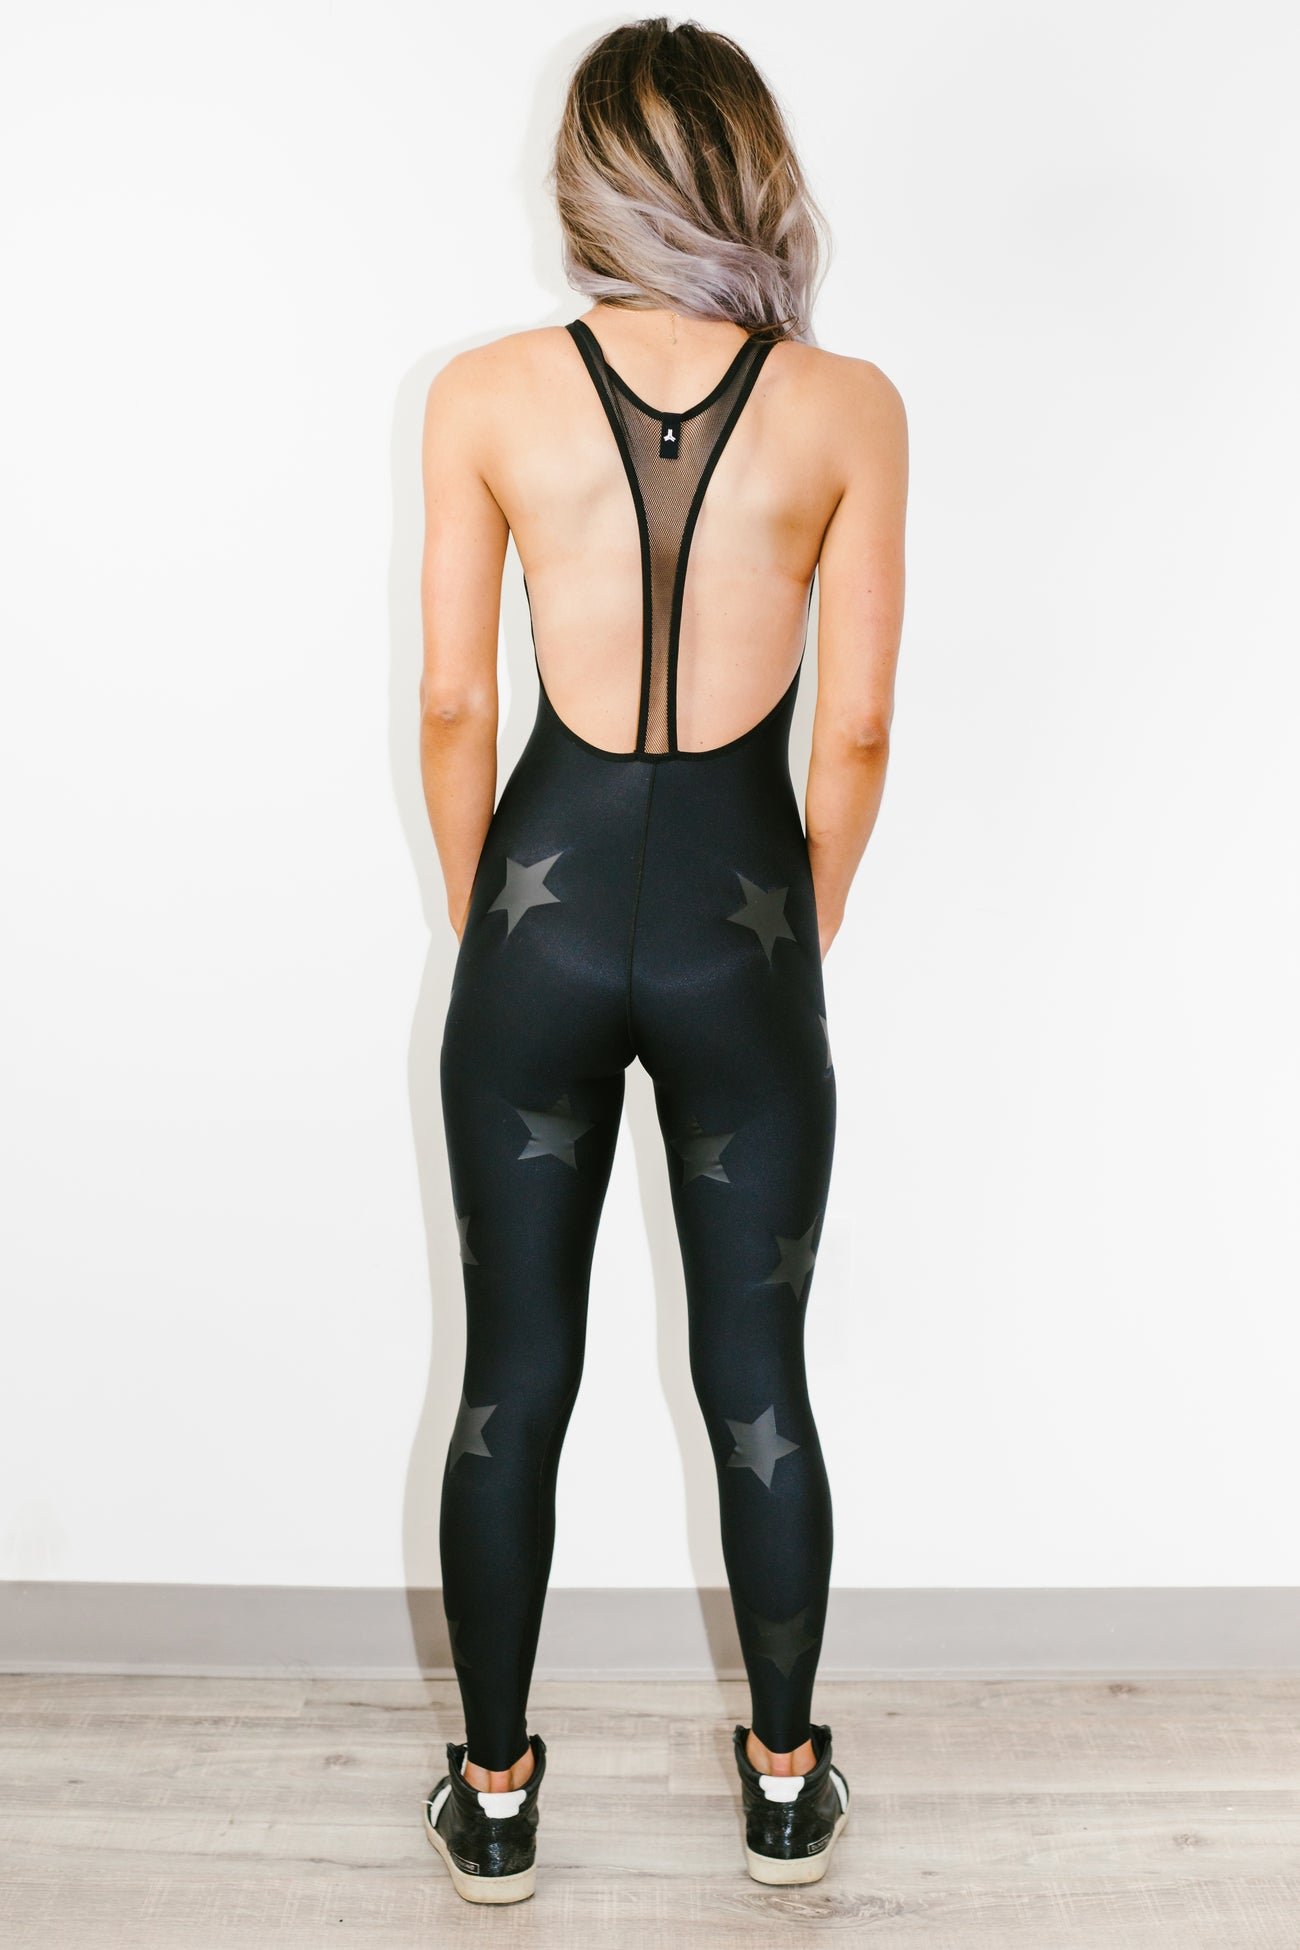 Motion Lux Knockout Unitard Nero Matte